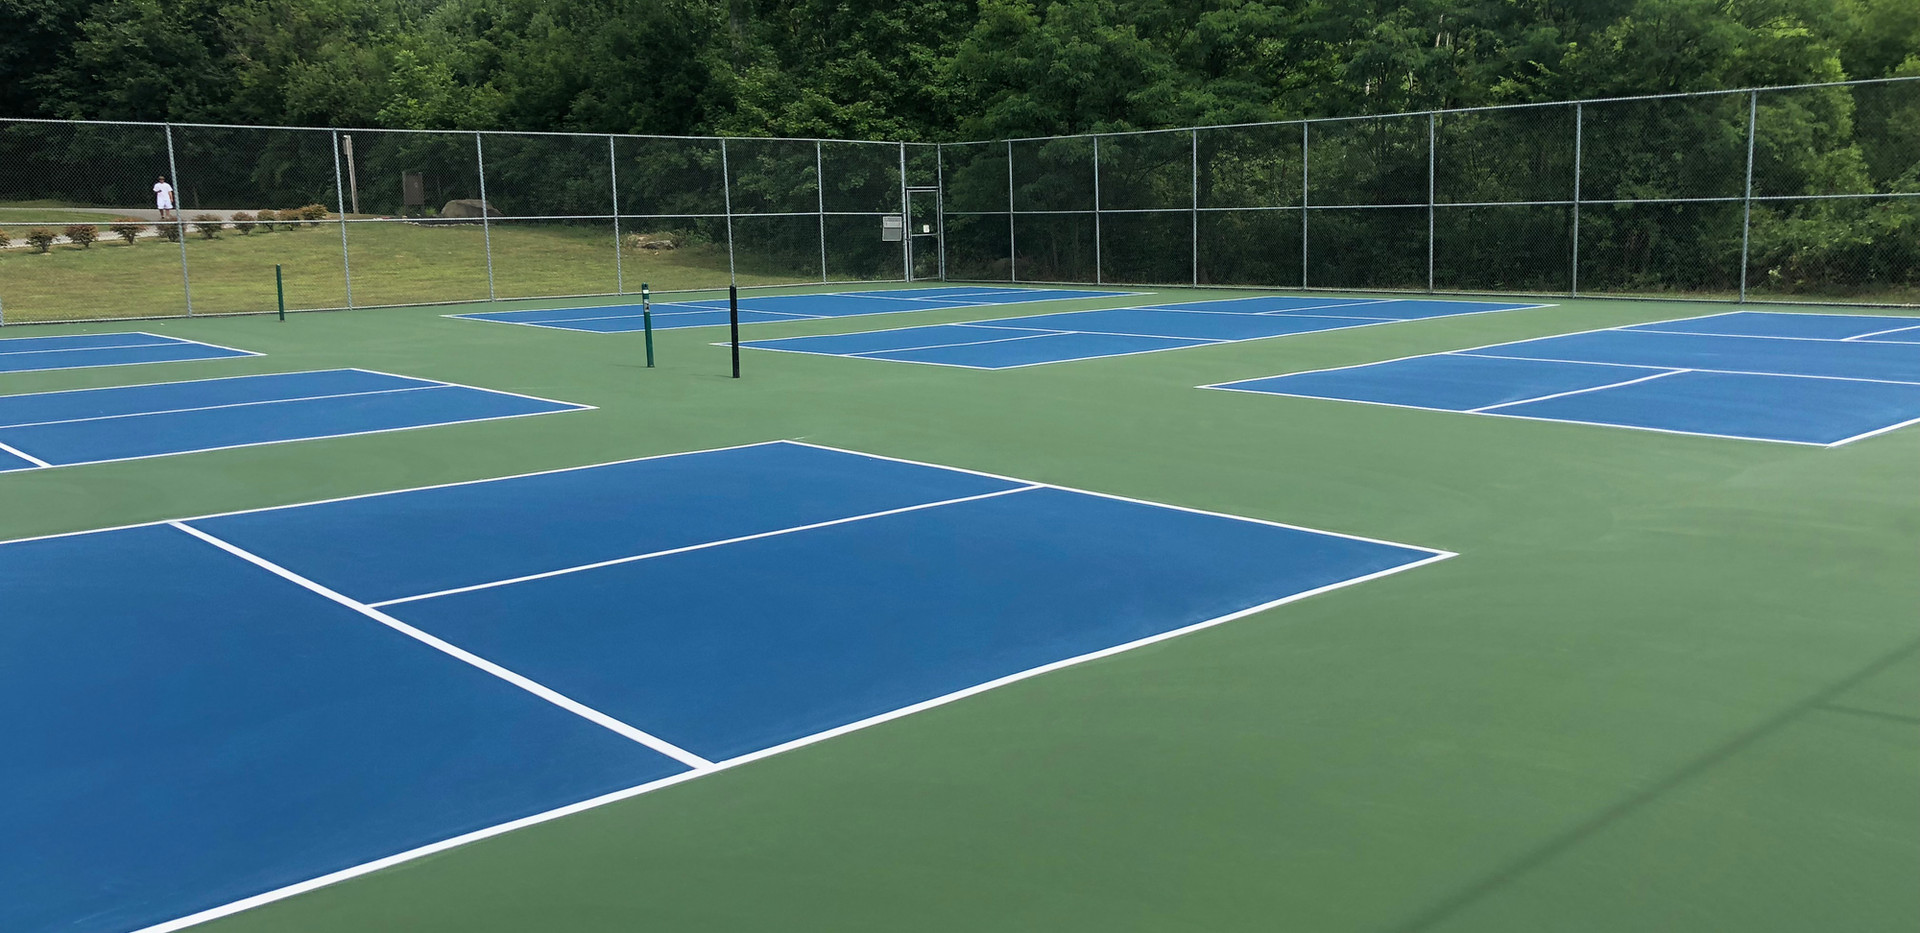 SHENANGO PARK - SPORTS COURT PROJECT.